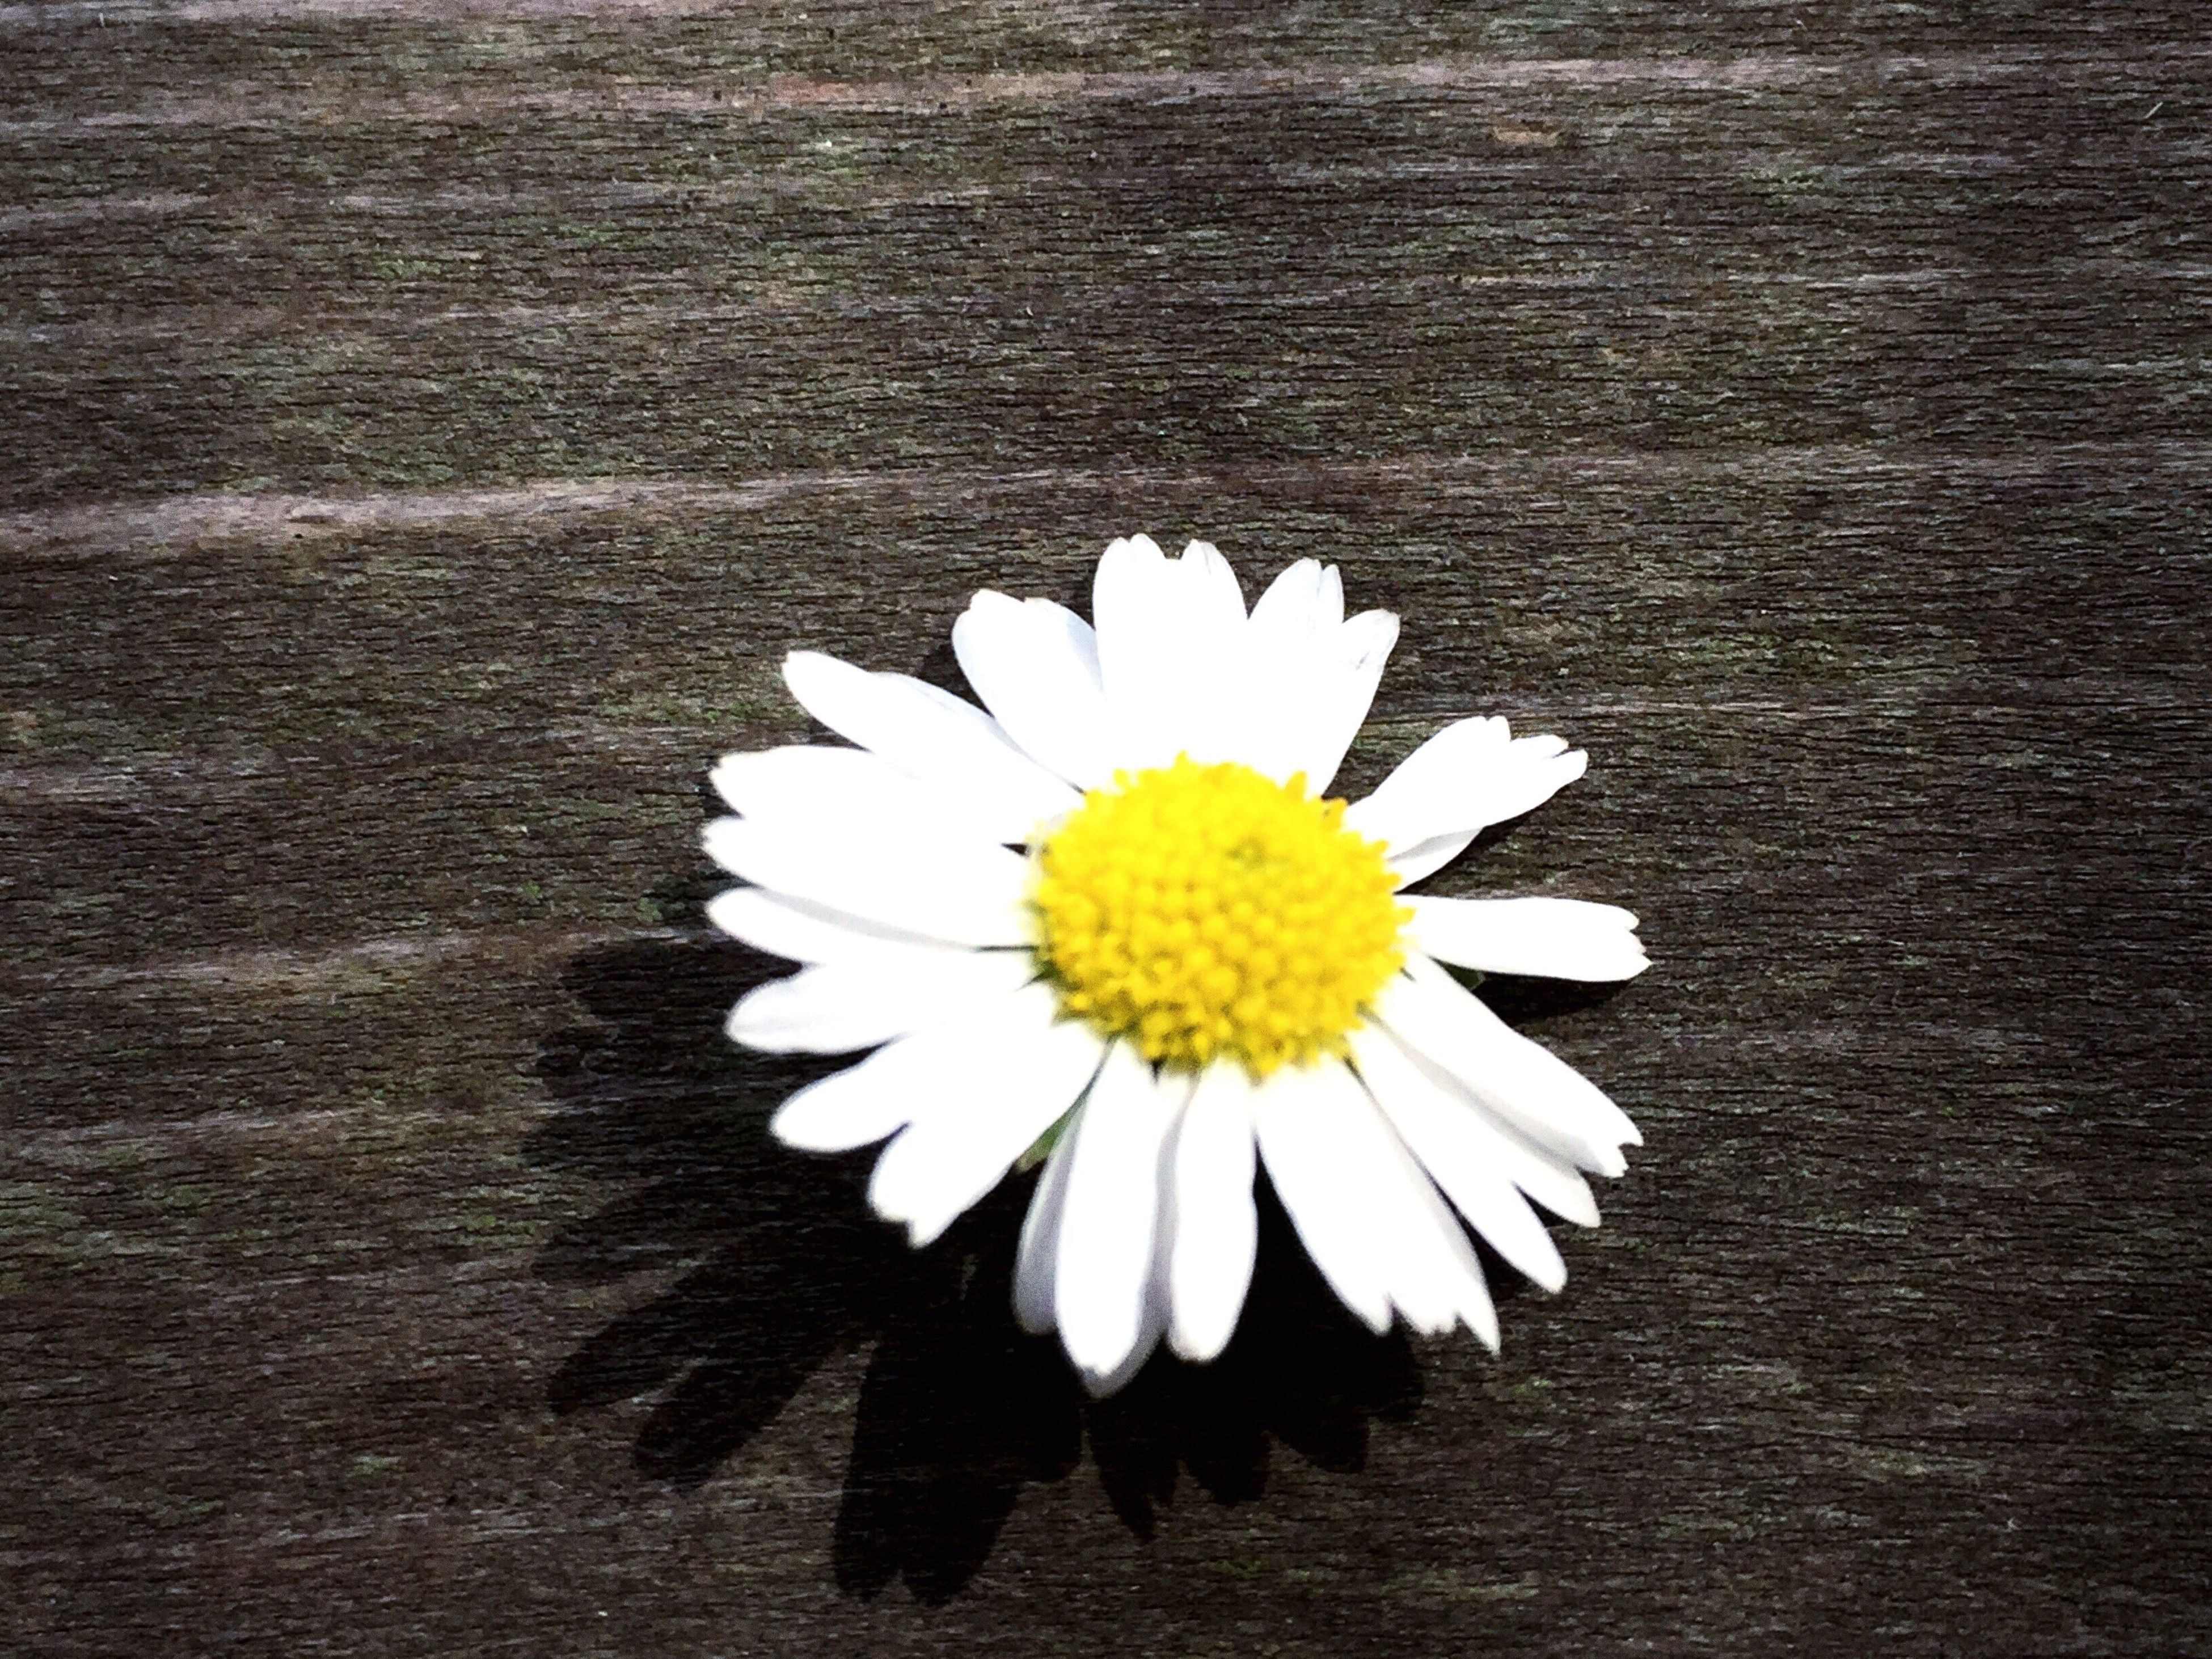 flower, petal, flower head, daisy, white color, freshness, fragility, pollen, yellow, beauty in nature, close-up, nature, white, blooming, no people, growth, day, outdoors, in bloom, botany, focus on foreground, elevated view, softness, selective focus